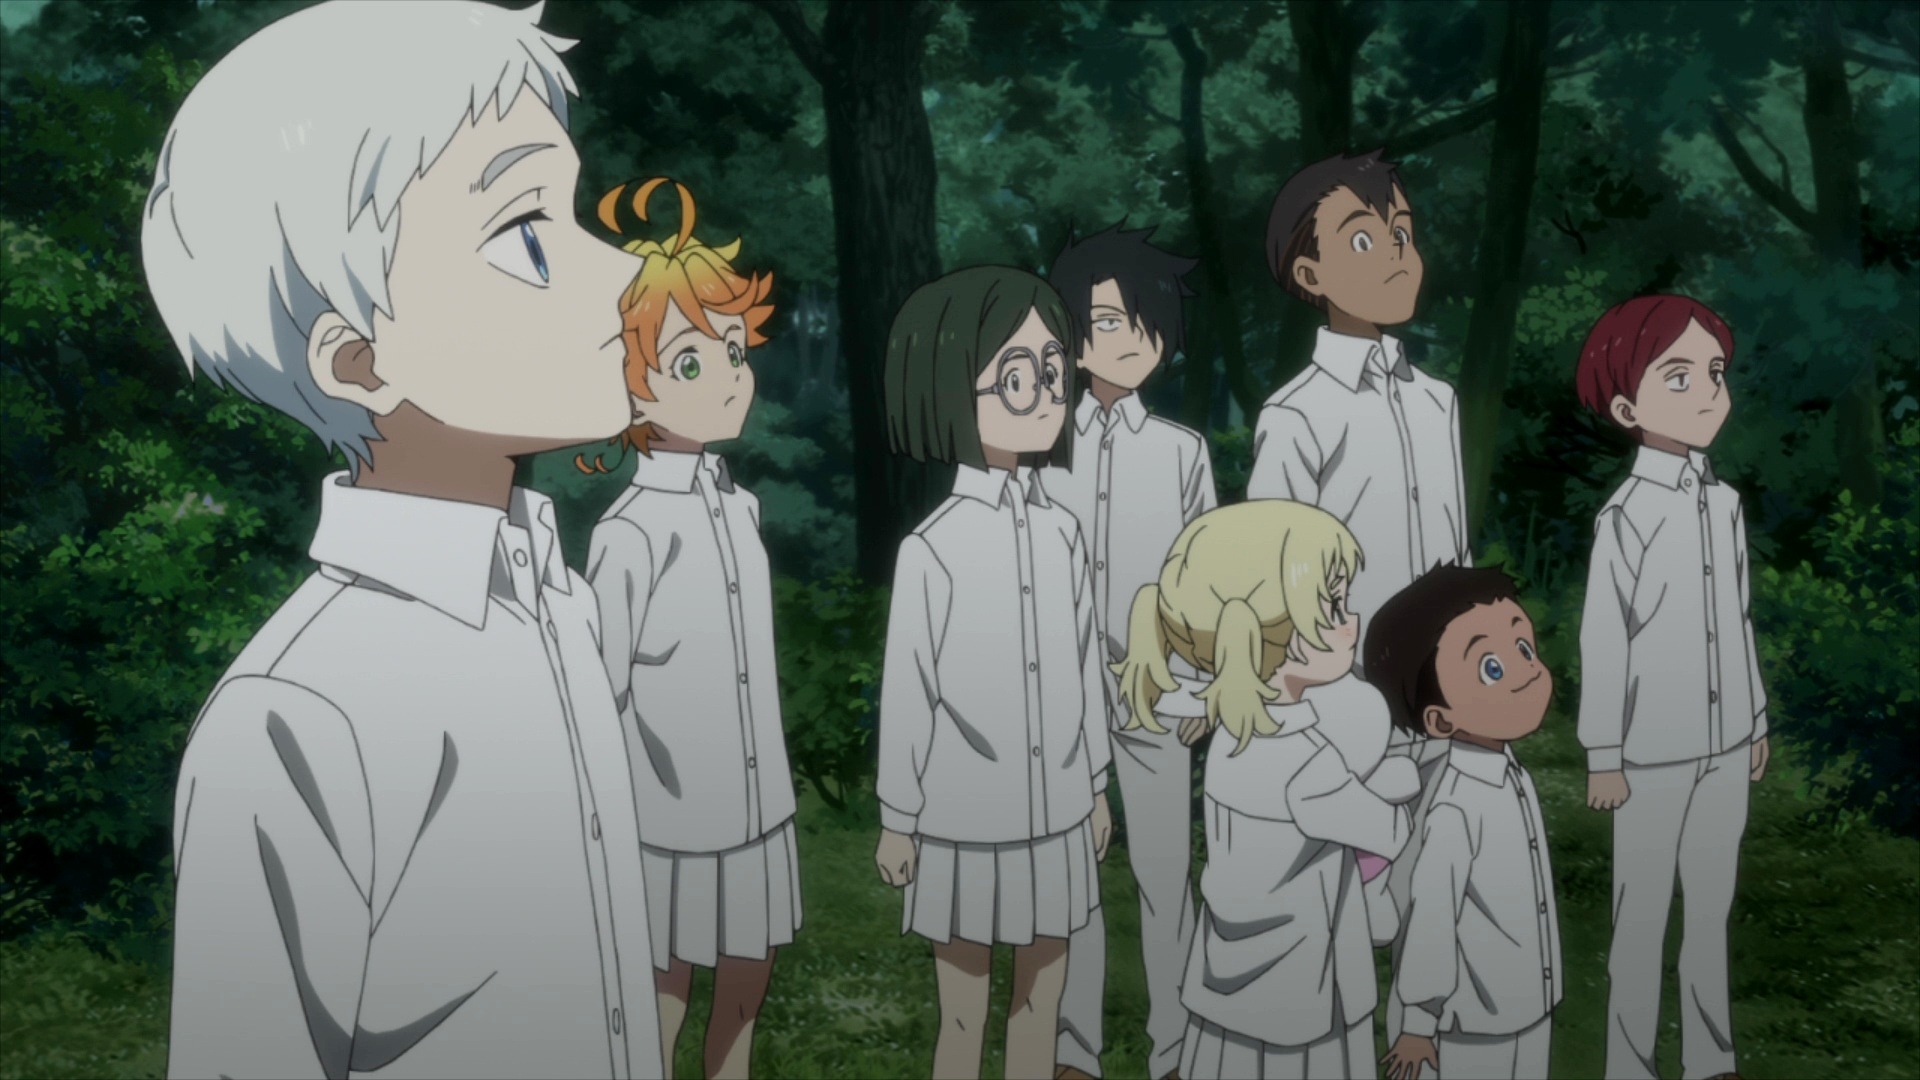 Anime Horrors The Promised Neverland Is A Great Work Of